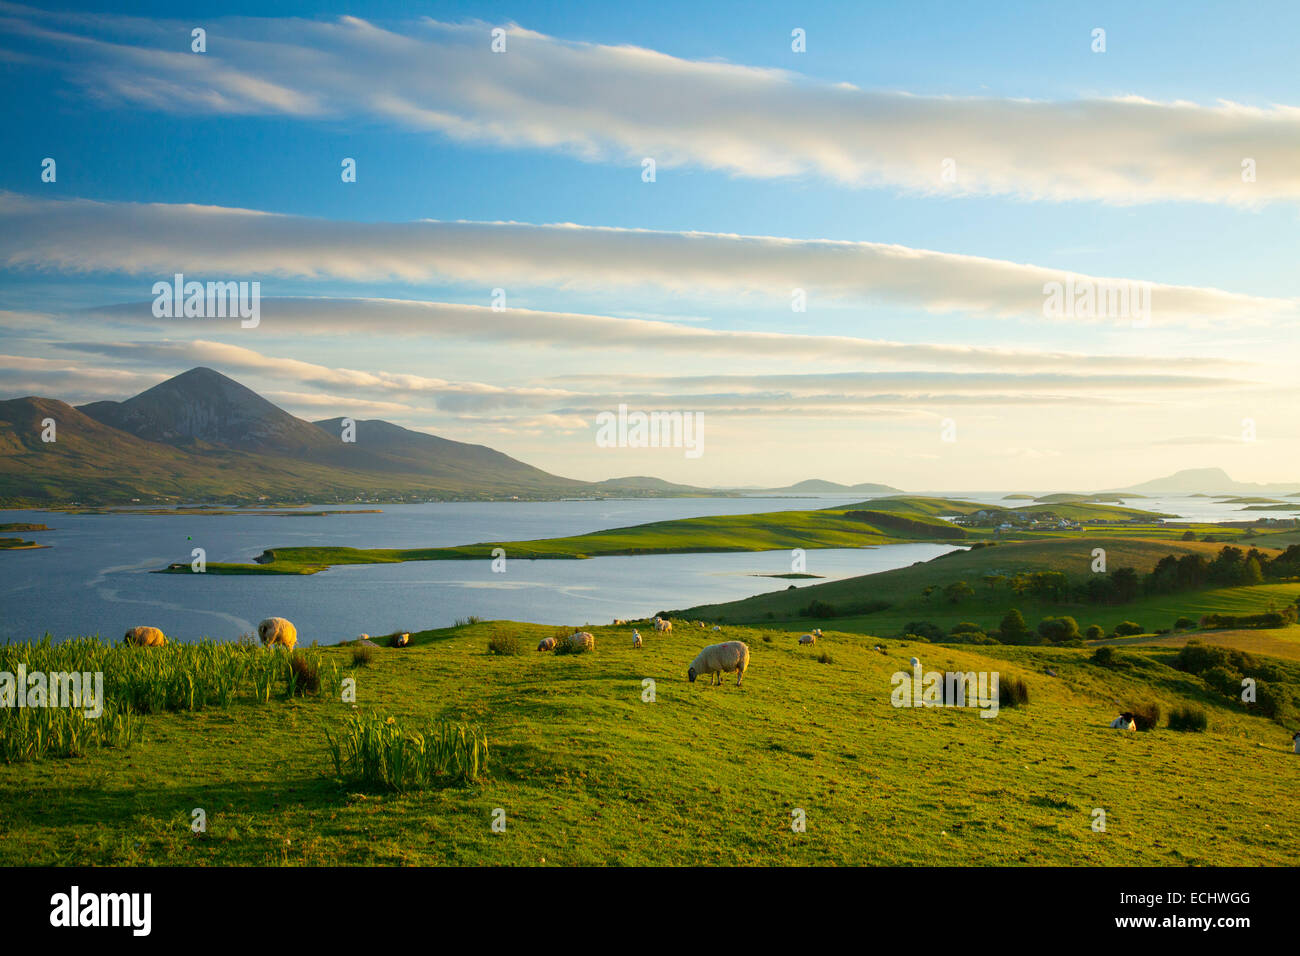 Sheep grazing beneath Croagh Patrick on the shore of Clew Bay, County Mayo, Ireland. - Stock Image